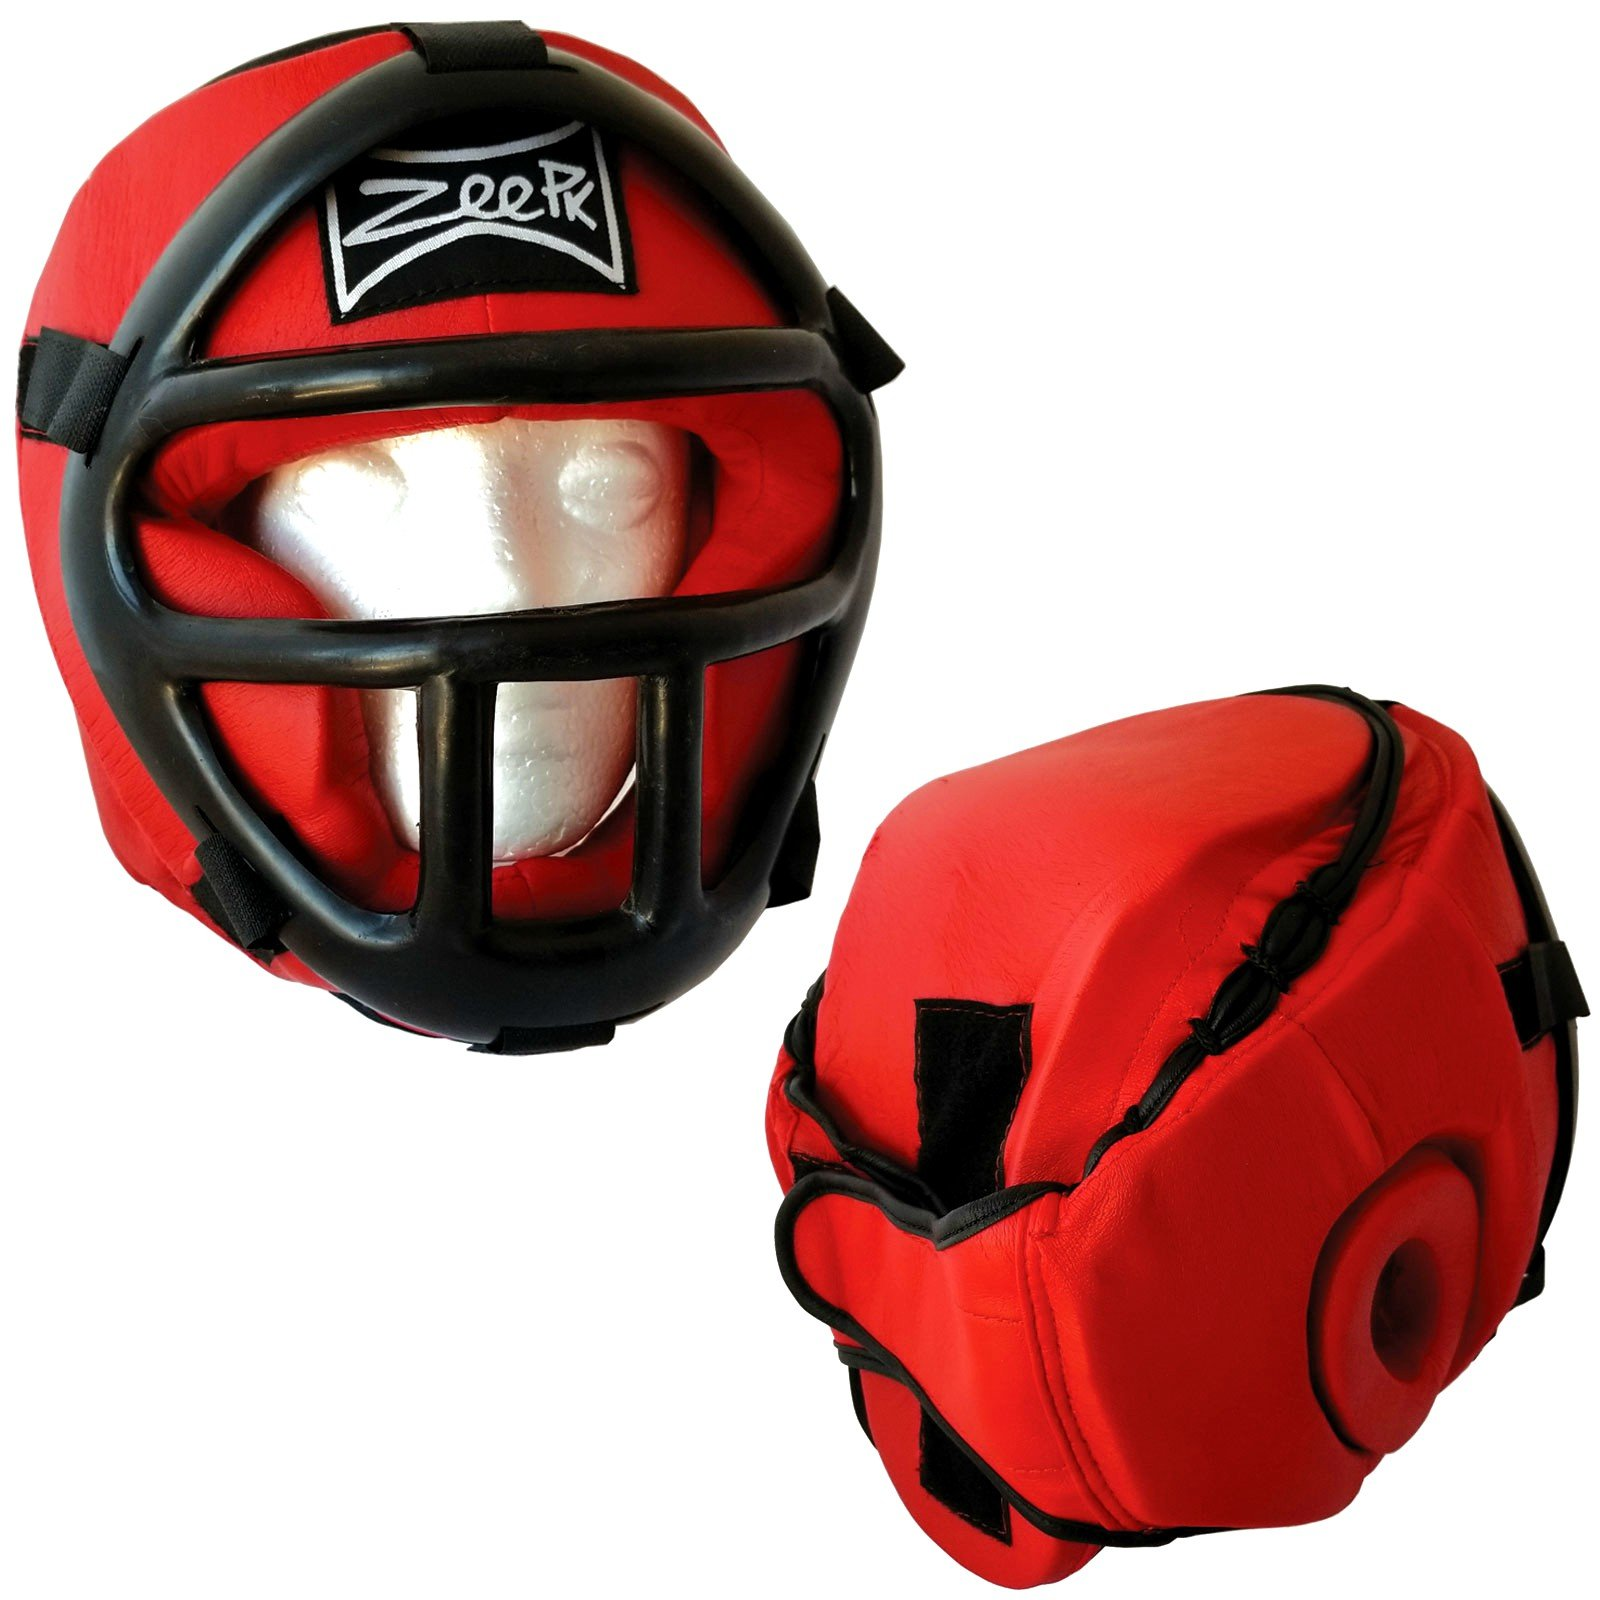 Liberty Supply Zeepk PU Leather Art MMA Boxing Protector Head Guard UFC Wrestling Helmet Gear with Face Guard Grill Red Color Size Medium